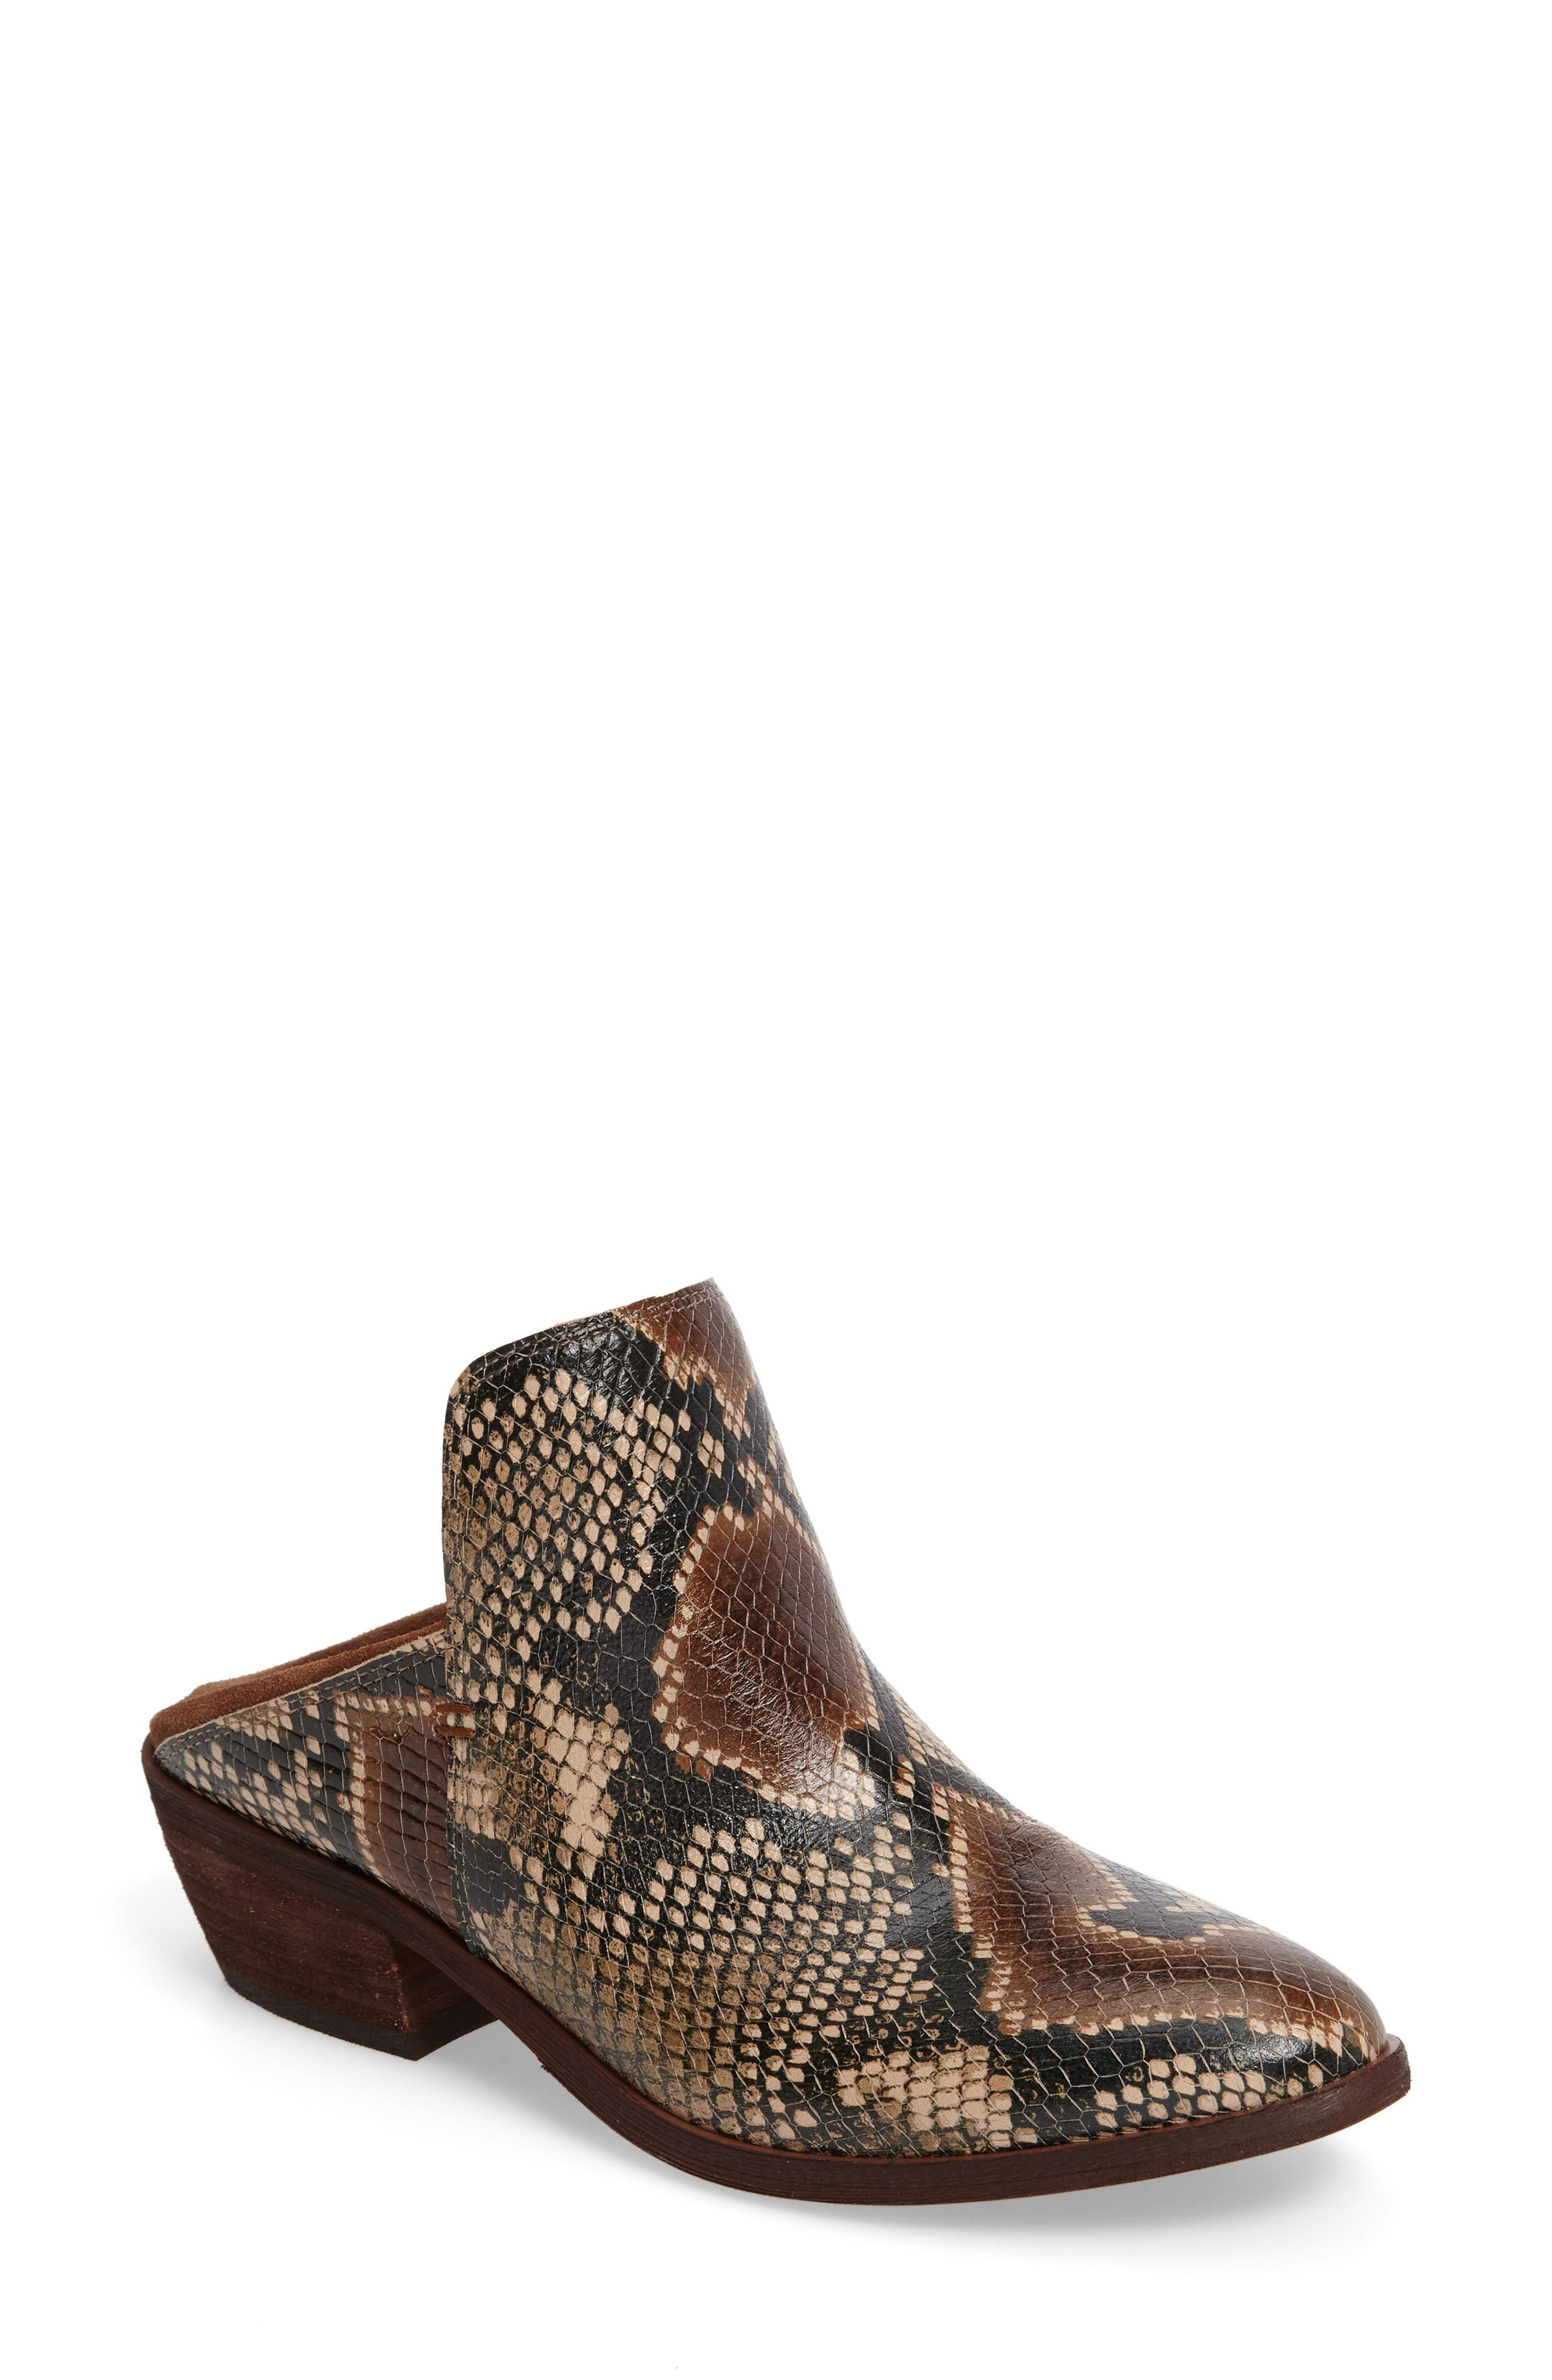 Prentice Convertible Ankle Boot,                             Main thumbnail 2, color,